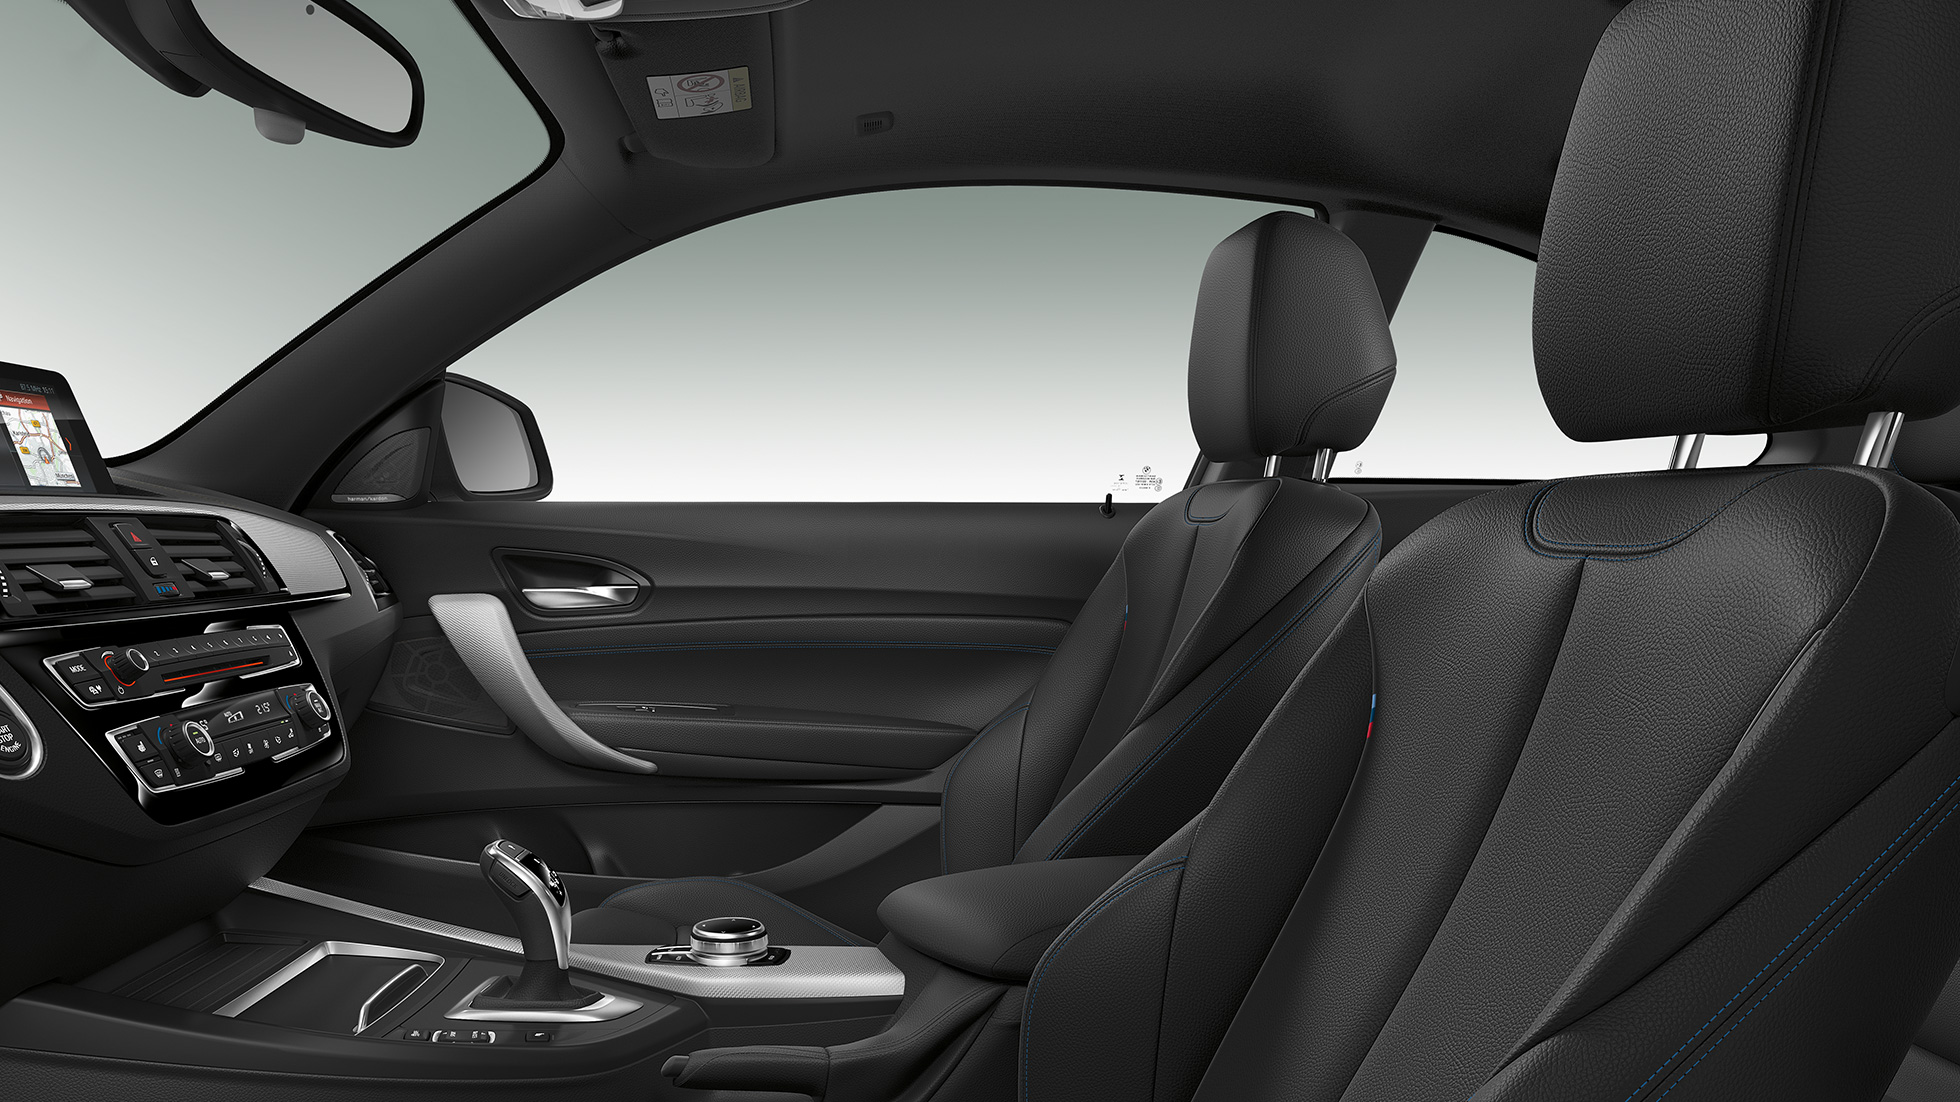 BMW 2 Series Coupé, Model M Sport interior